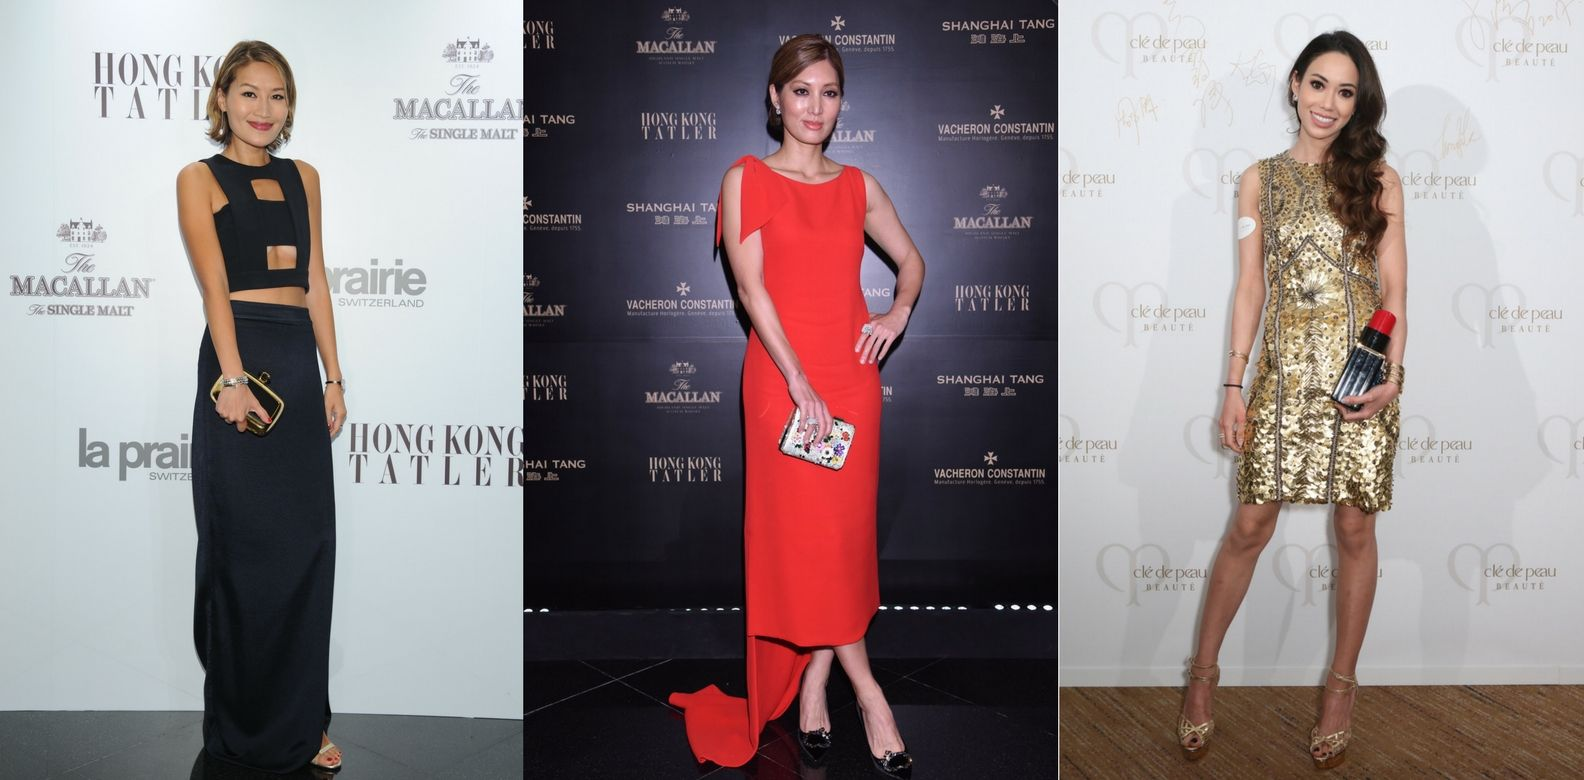 Asia's Most Stylish: 15 Hong Kong Fashionistas To Know